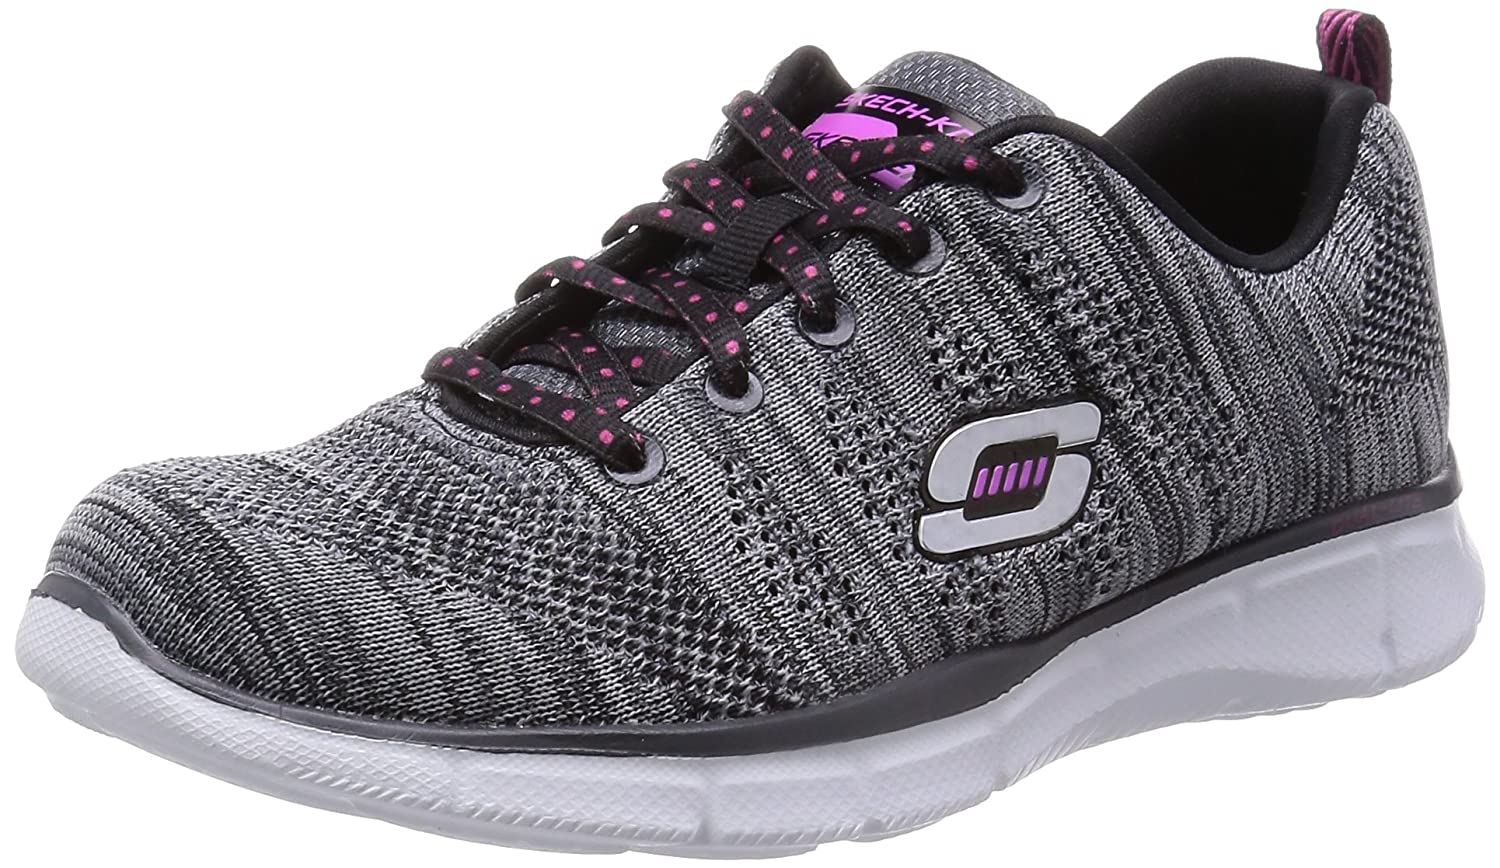 Equalizer First Rate, Womens Low-Top Sneakers Skechers